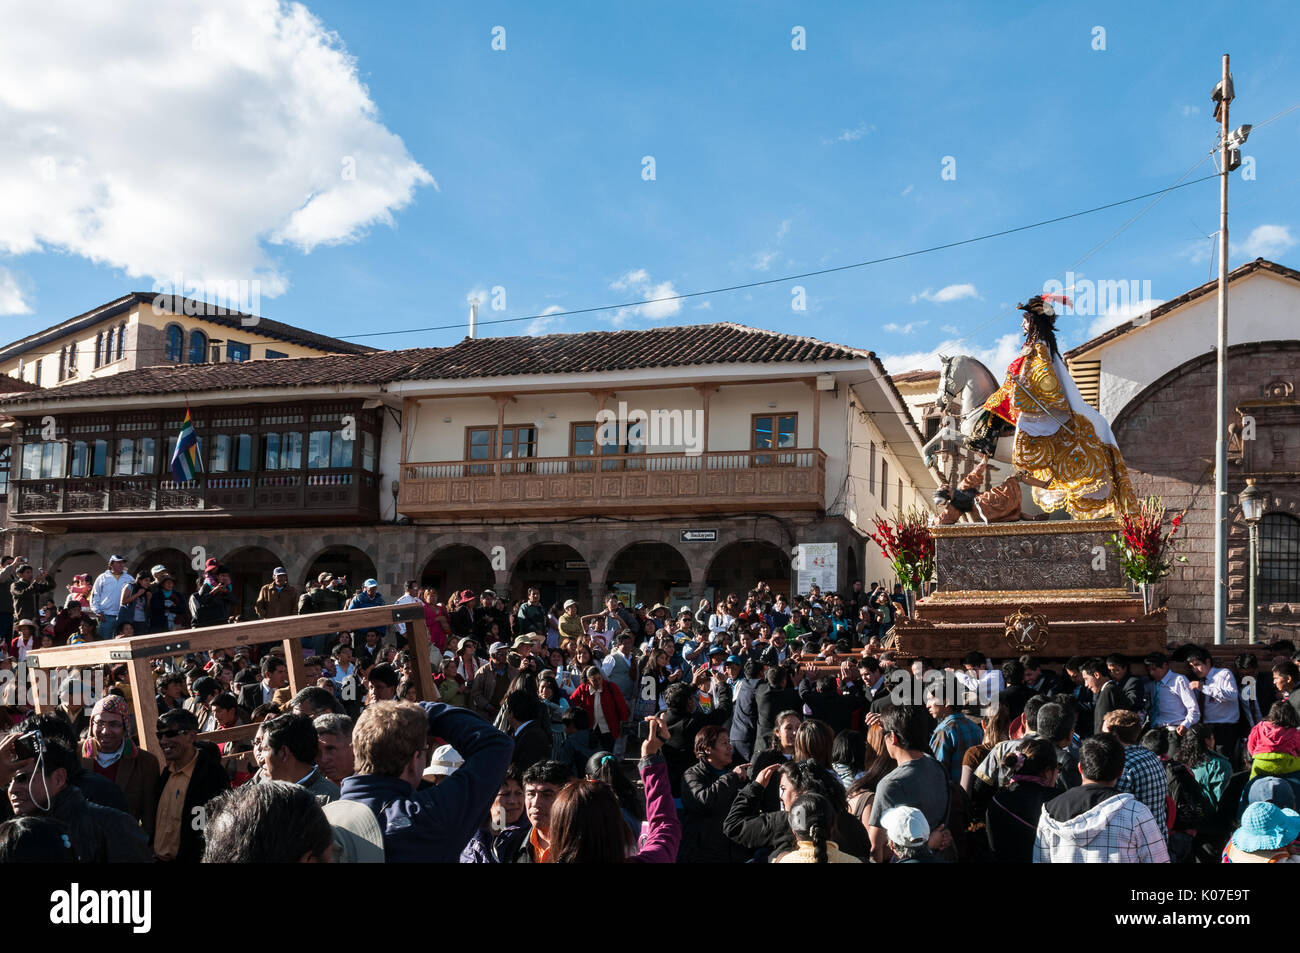 Parishioners carry a large statue of Saint James through crowded Plaza de Armas during celebrations of Corpus Christi, Stock Photo